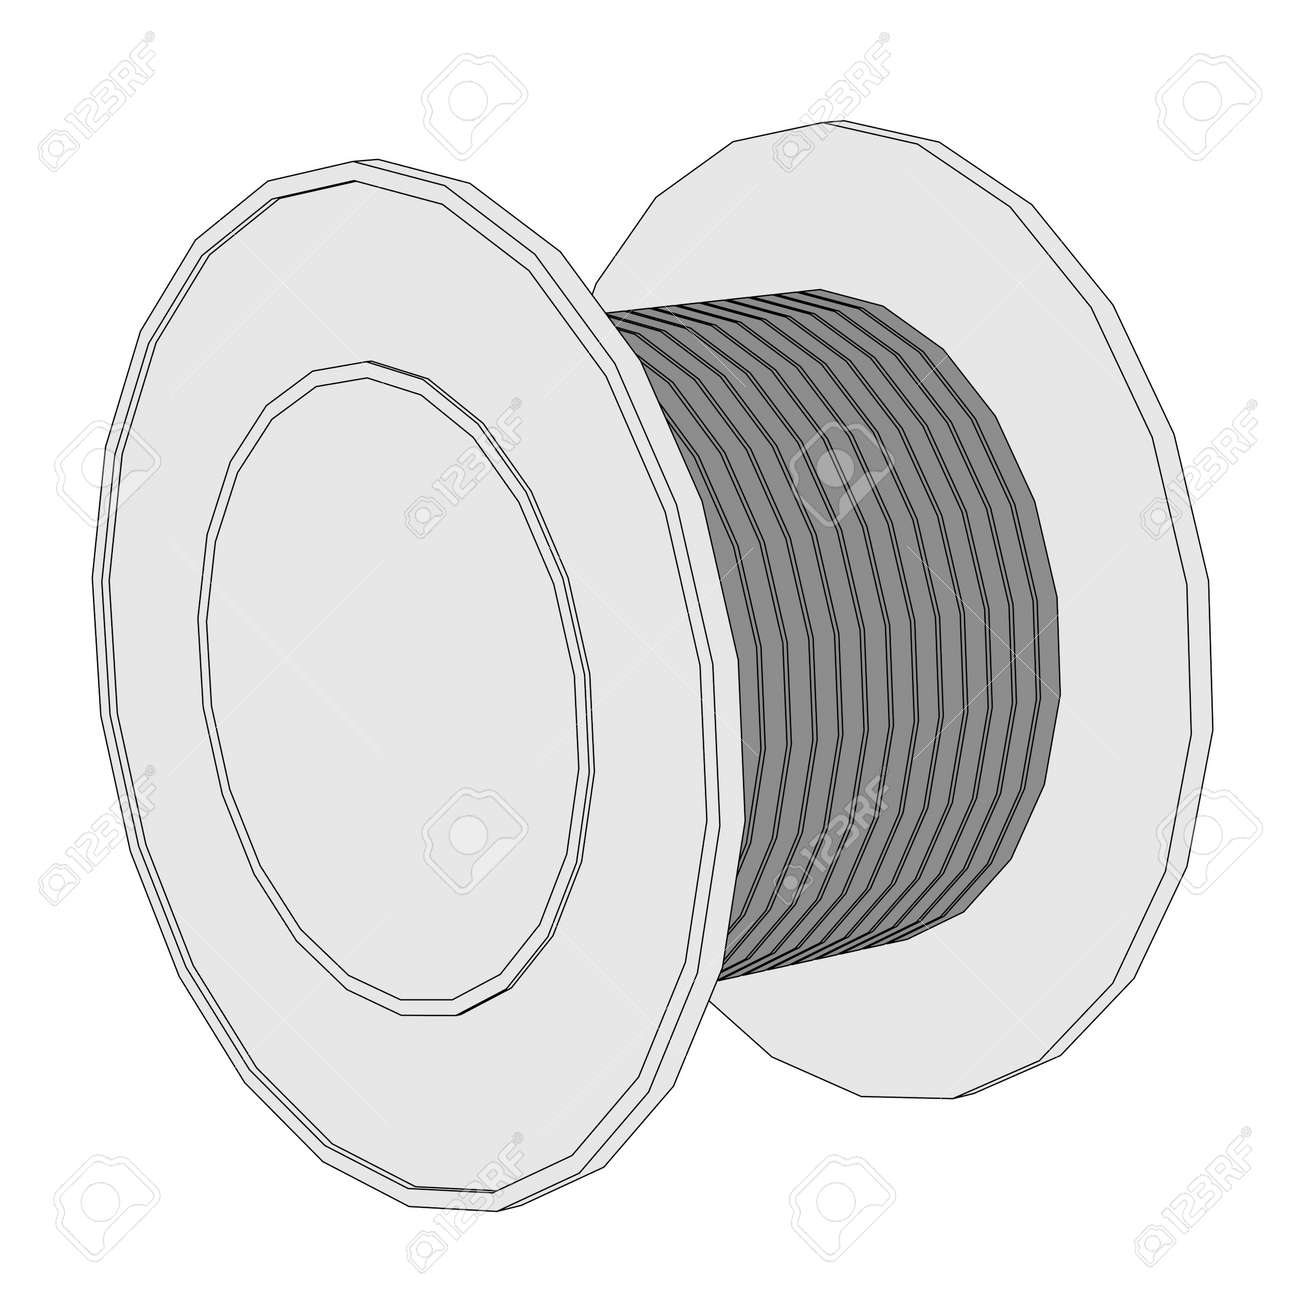 Cartoon Image Of Wire Spool Stock Photo, Picture And Royalty Free ...